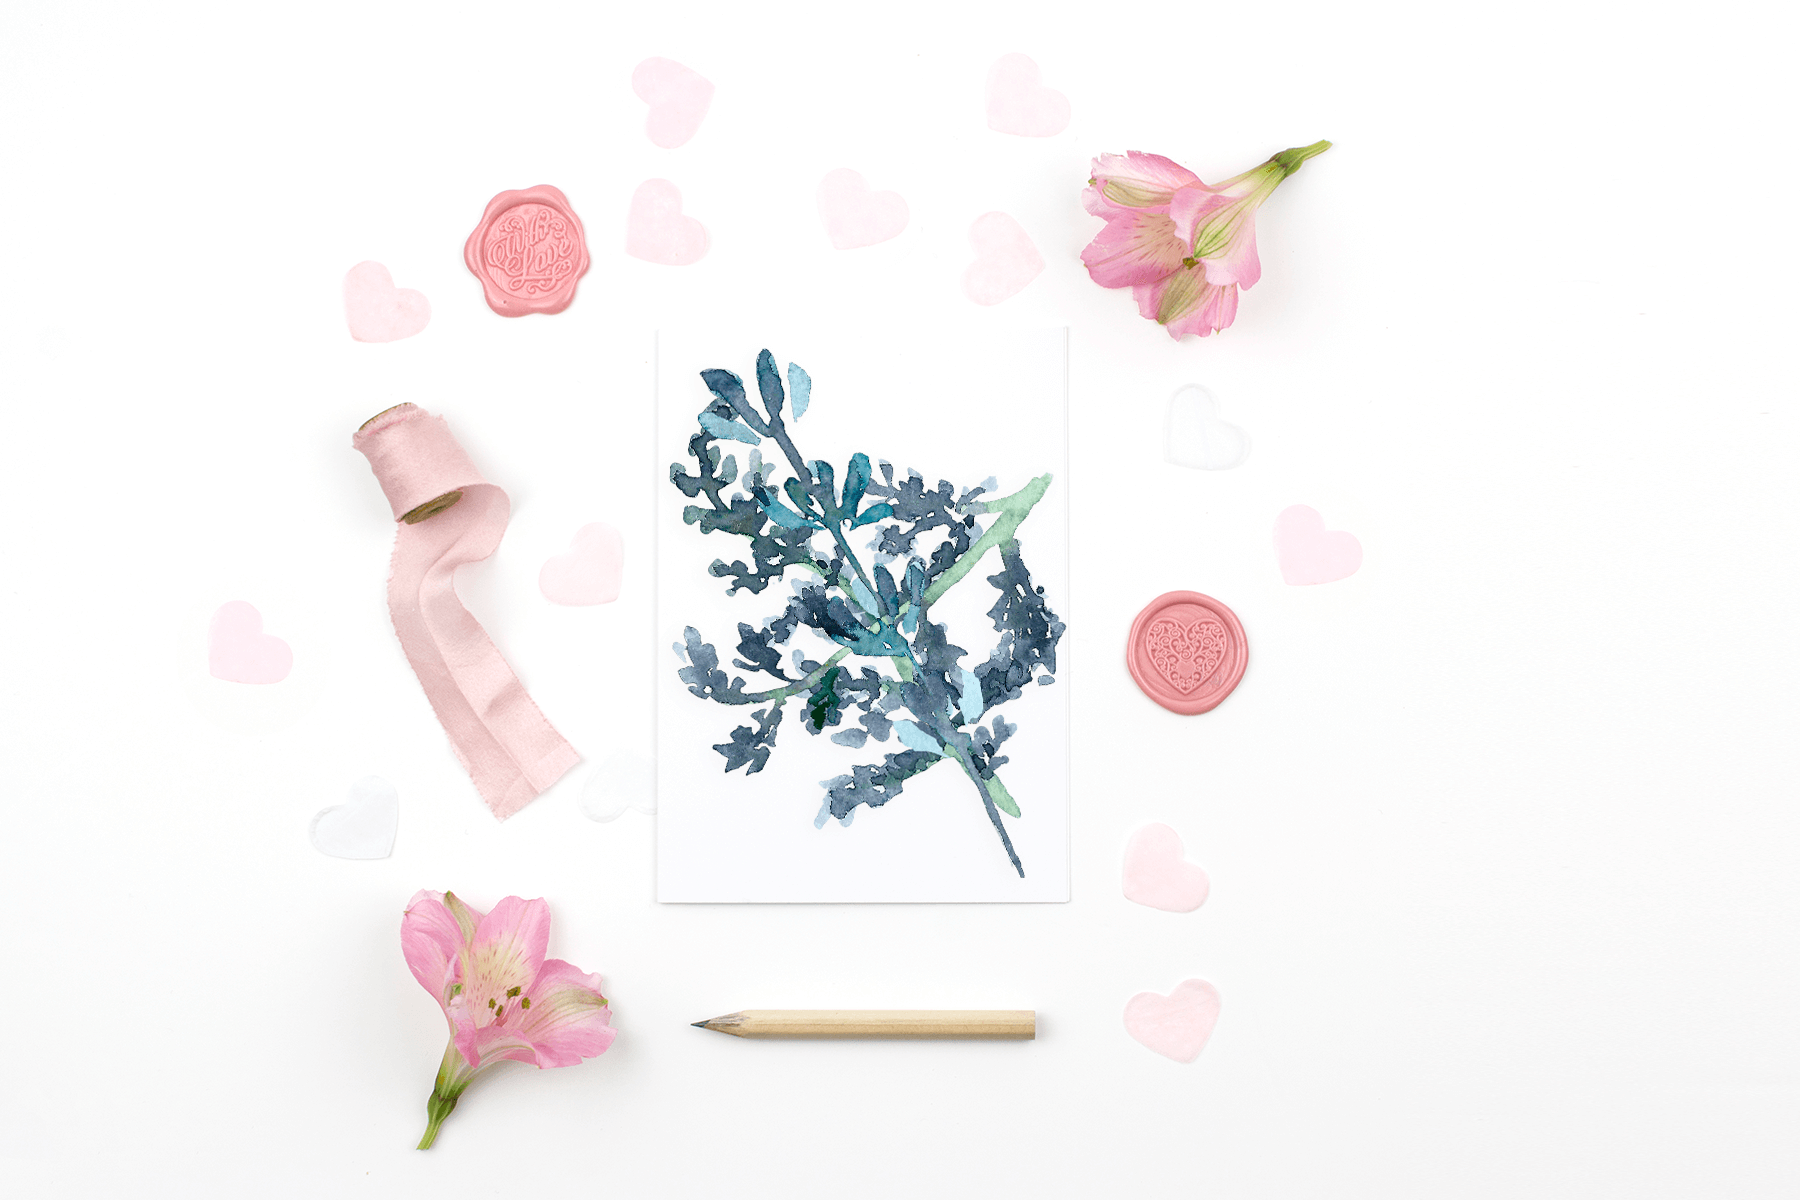 Free Romantic Valentine's Day Card Mockup